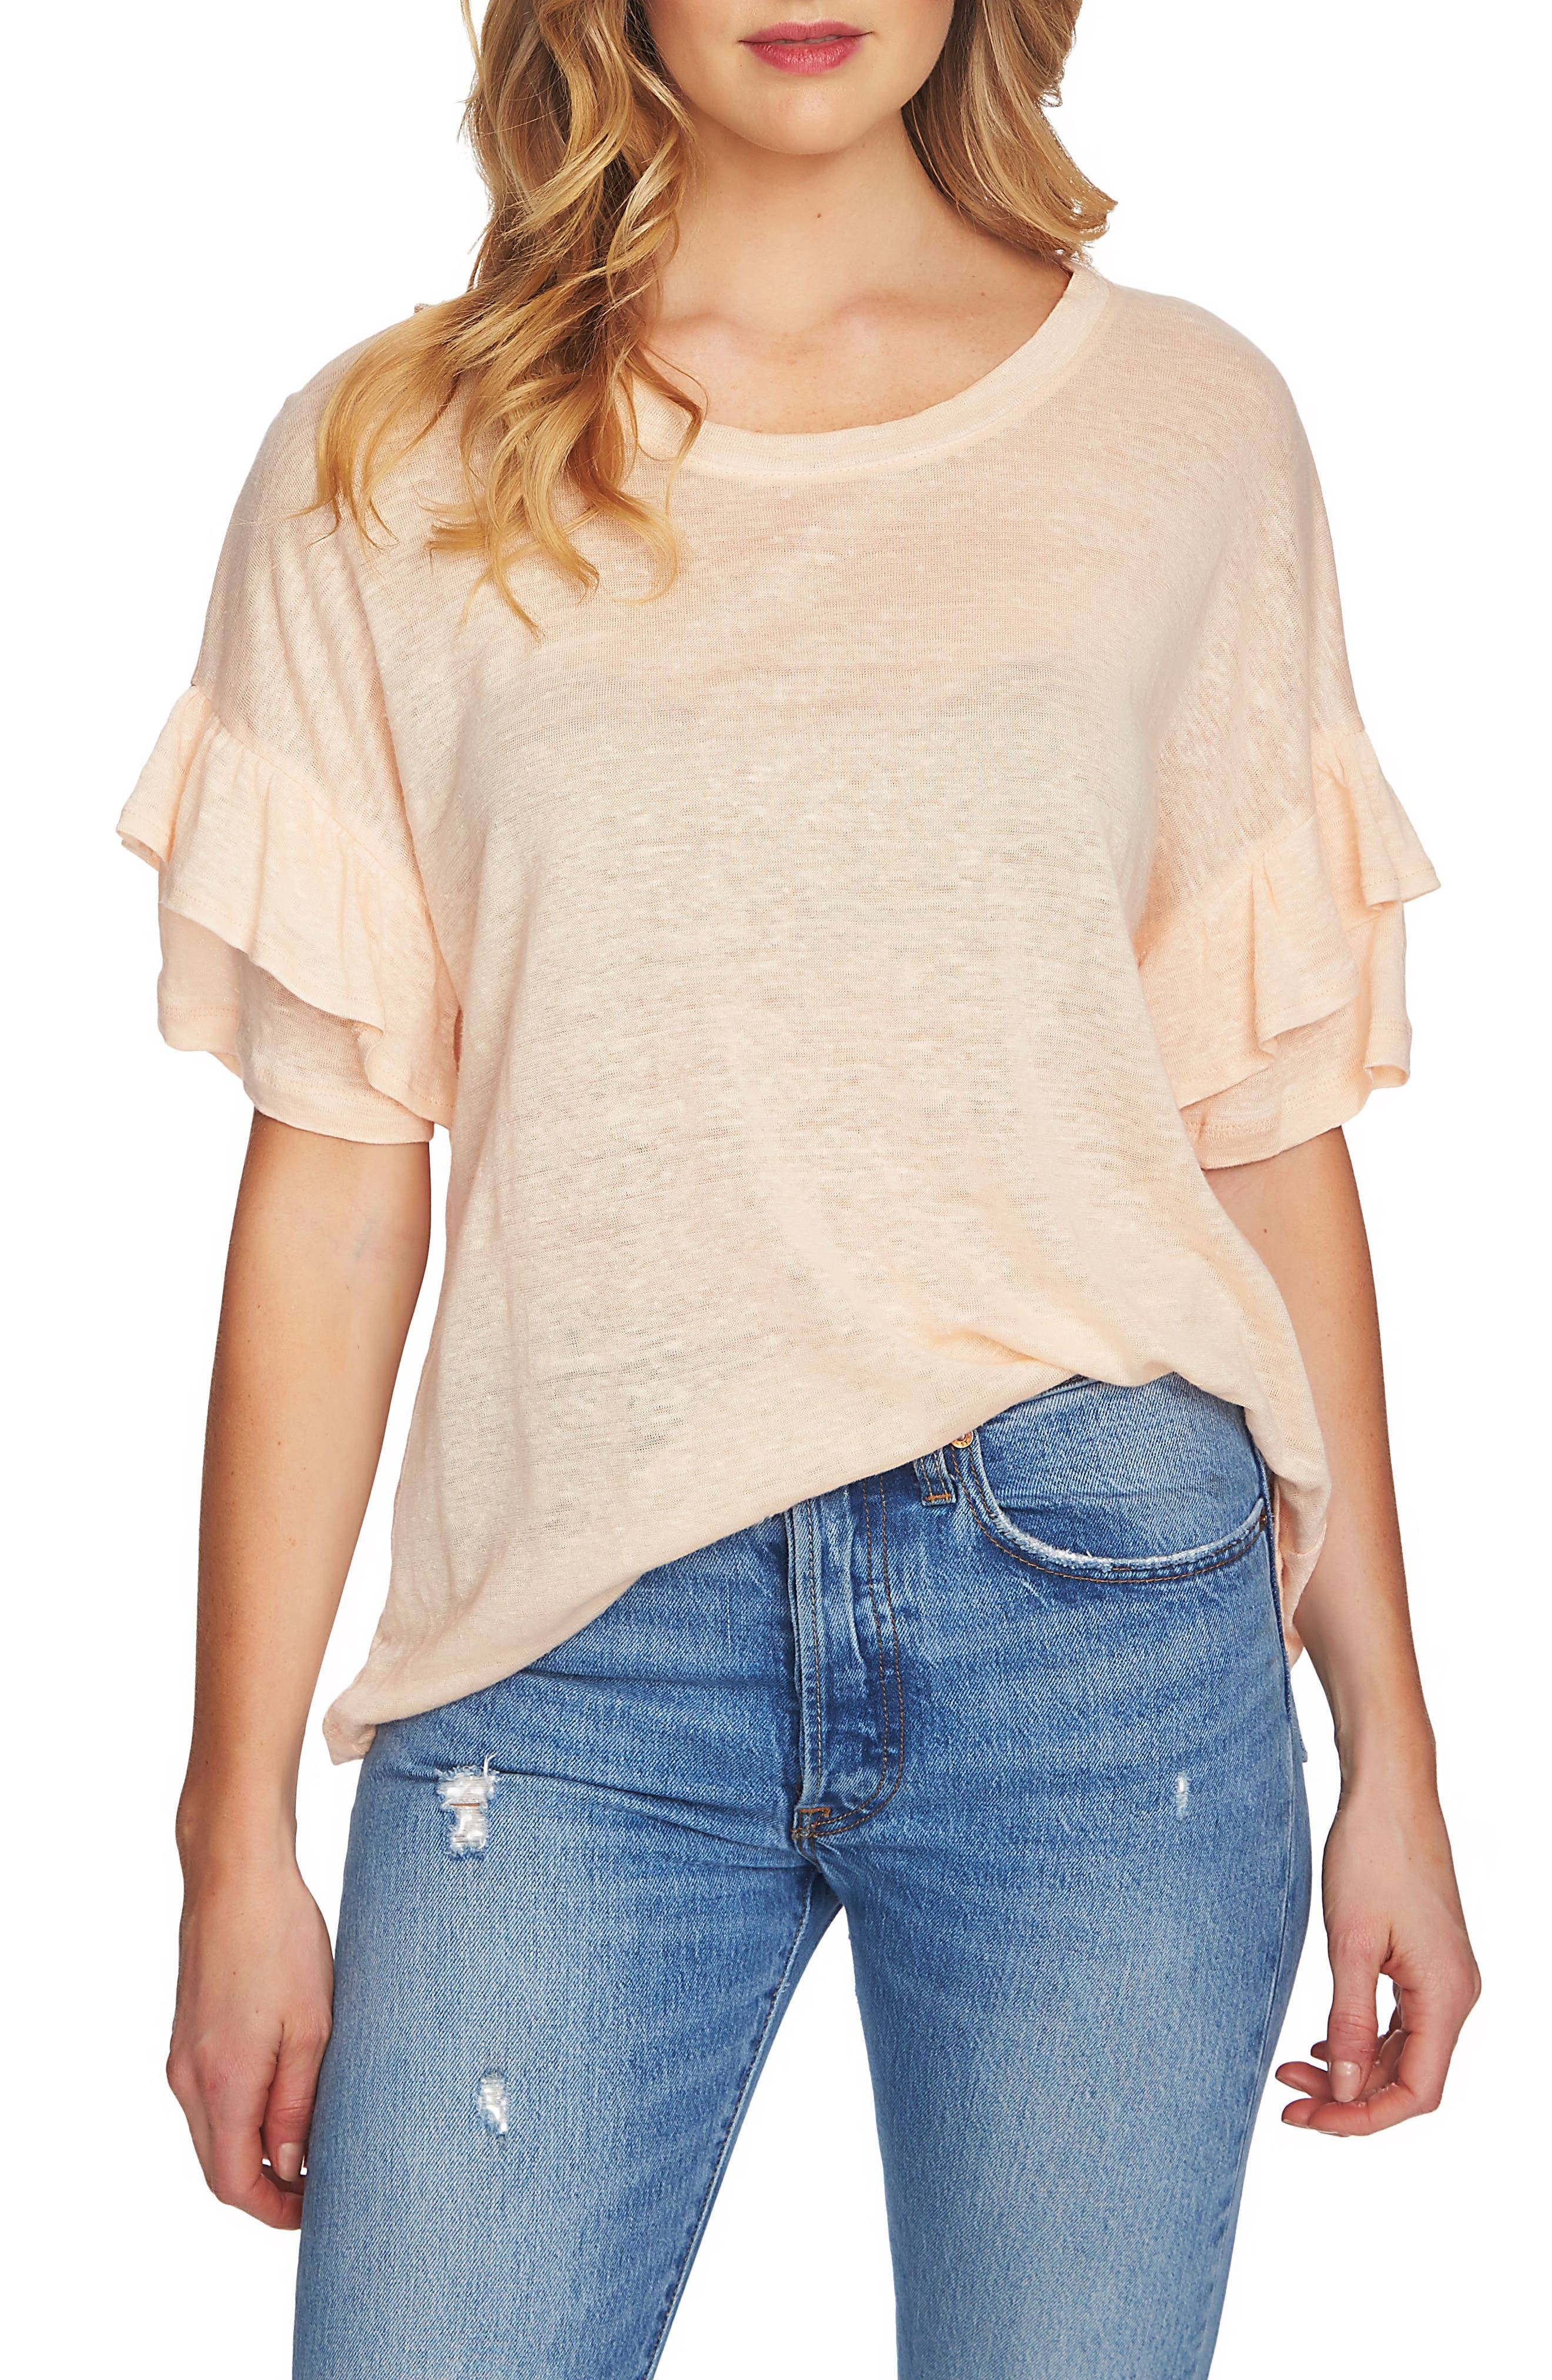 Alternate Image 1 Selected - 1.STATE Ruffle Linen Tee